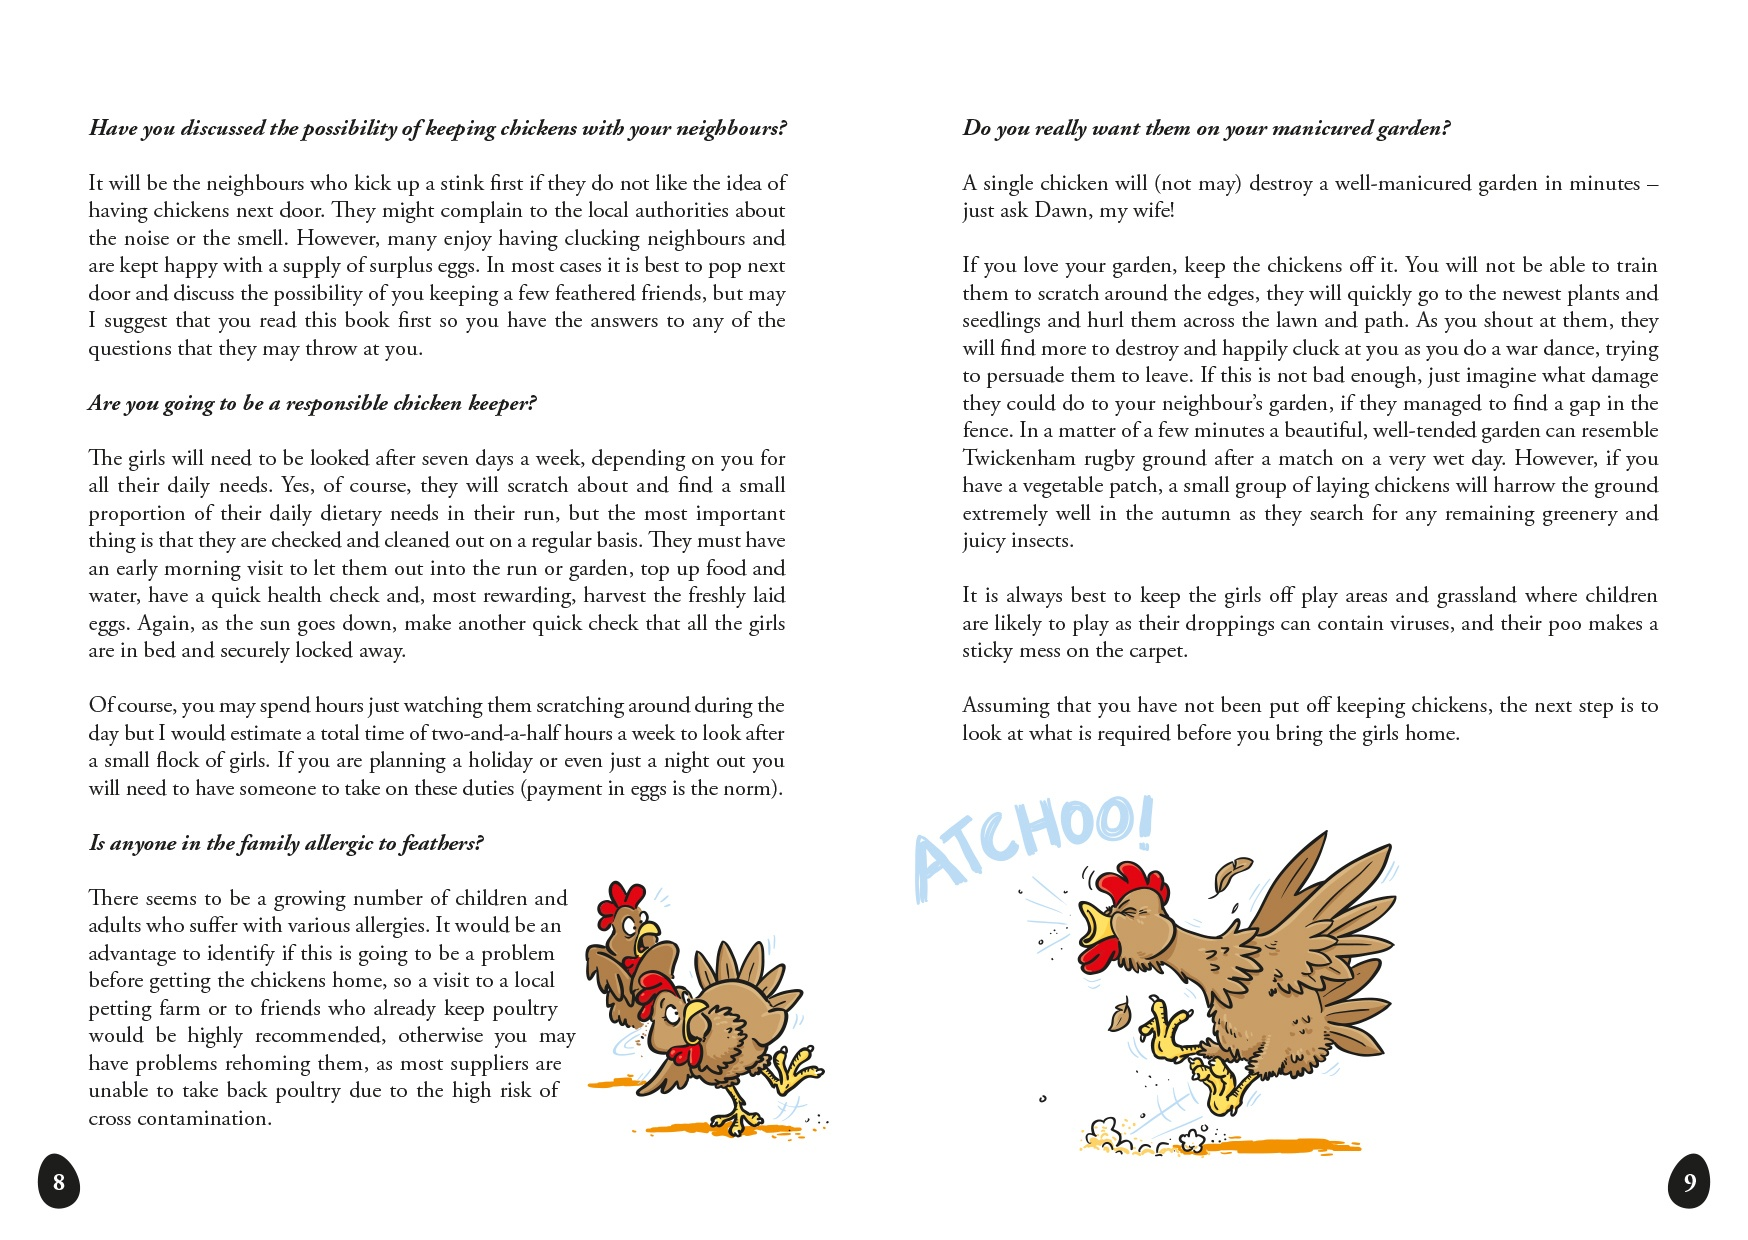 Chickens In Your Garden_Spread1.jpg